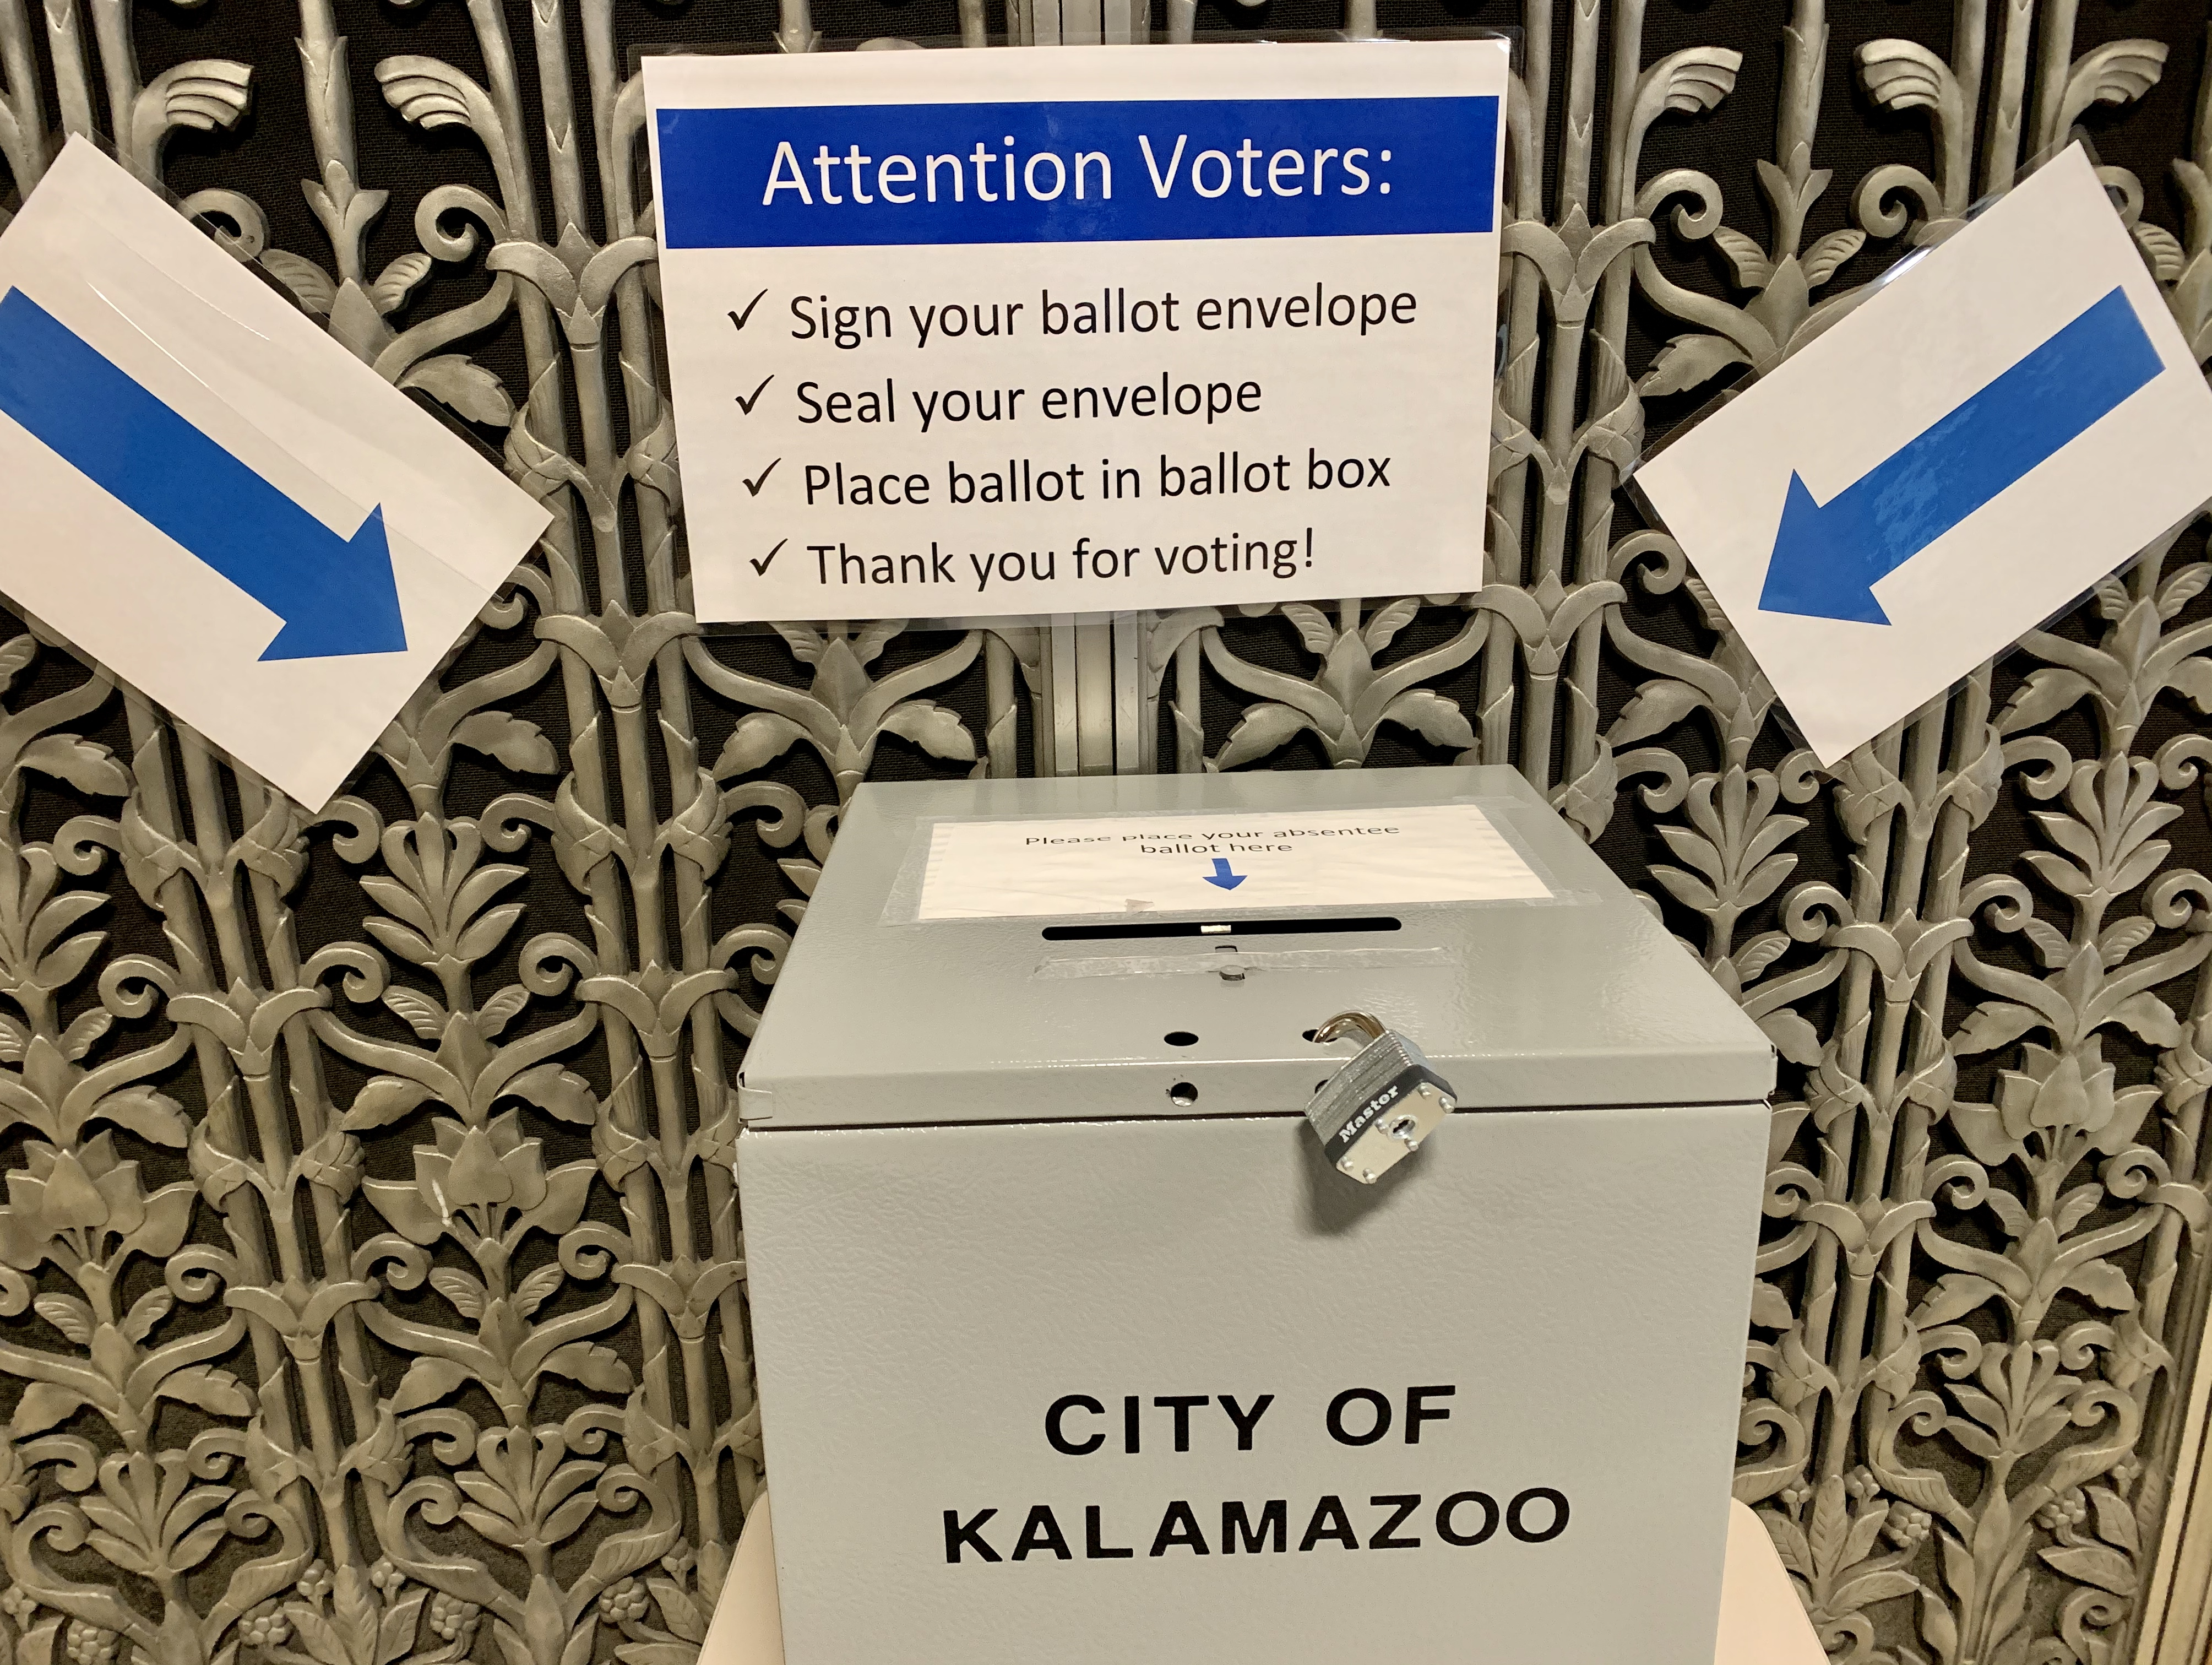 A drop-box for ballots awaits voters at the Kalamazoo City Hall during the Aug. 4, 2020 primary election in Michigan. A record number of Michigan voters have filed their decisions using absentee ballots for the primary. (WWMT/Hannah Knowles)